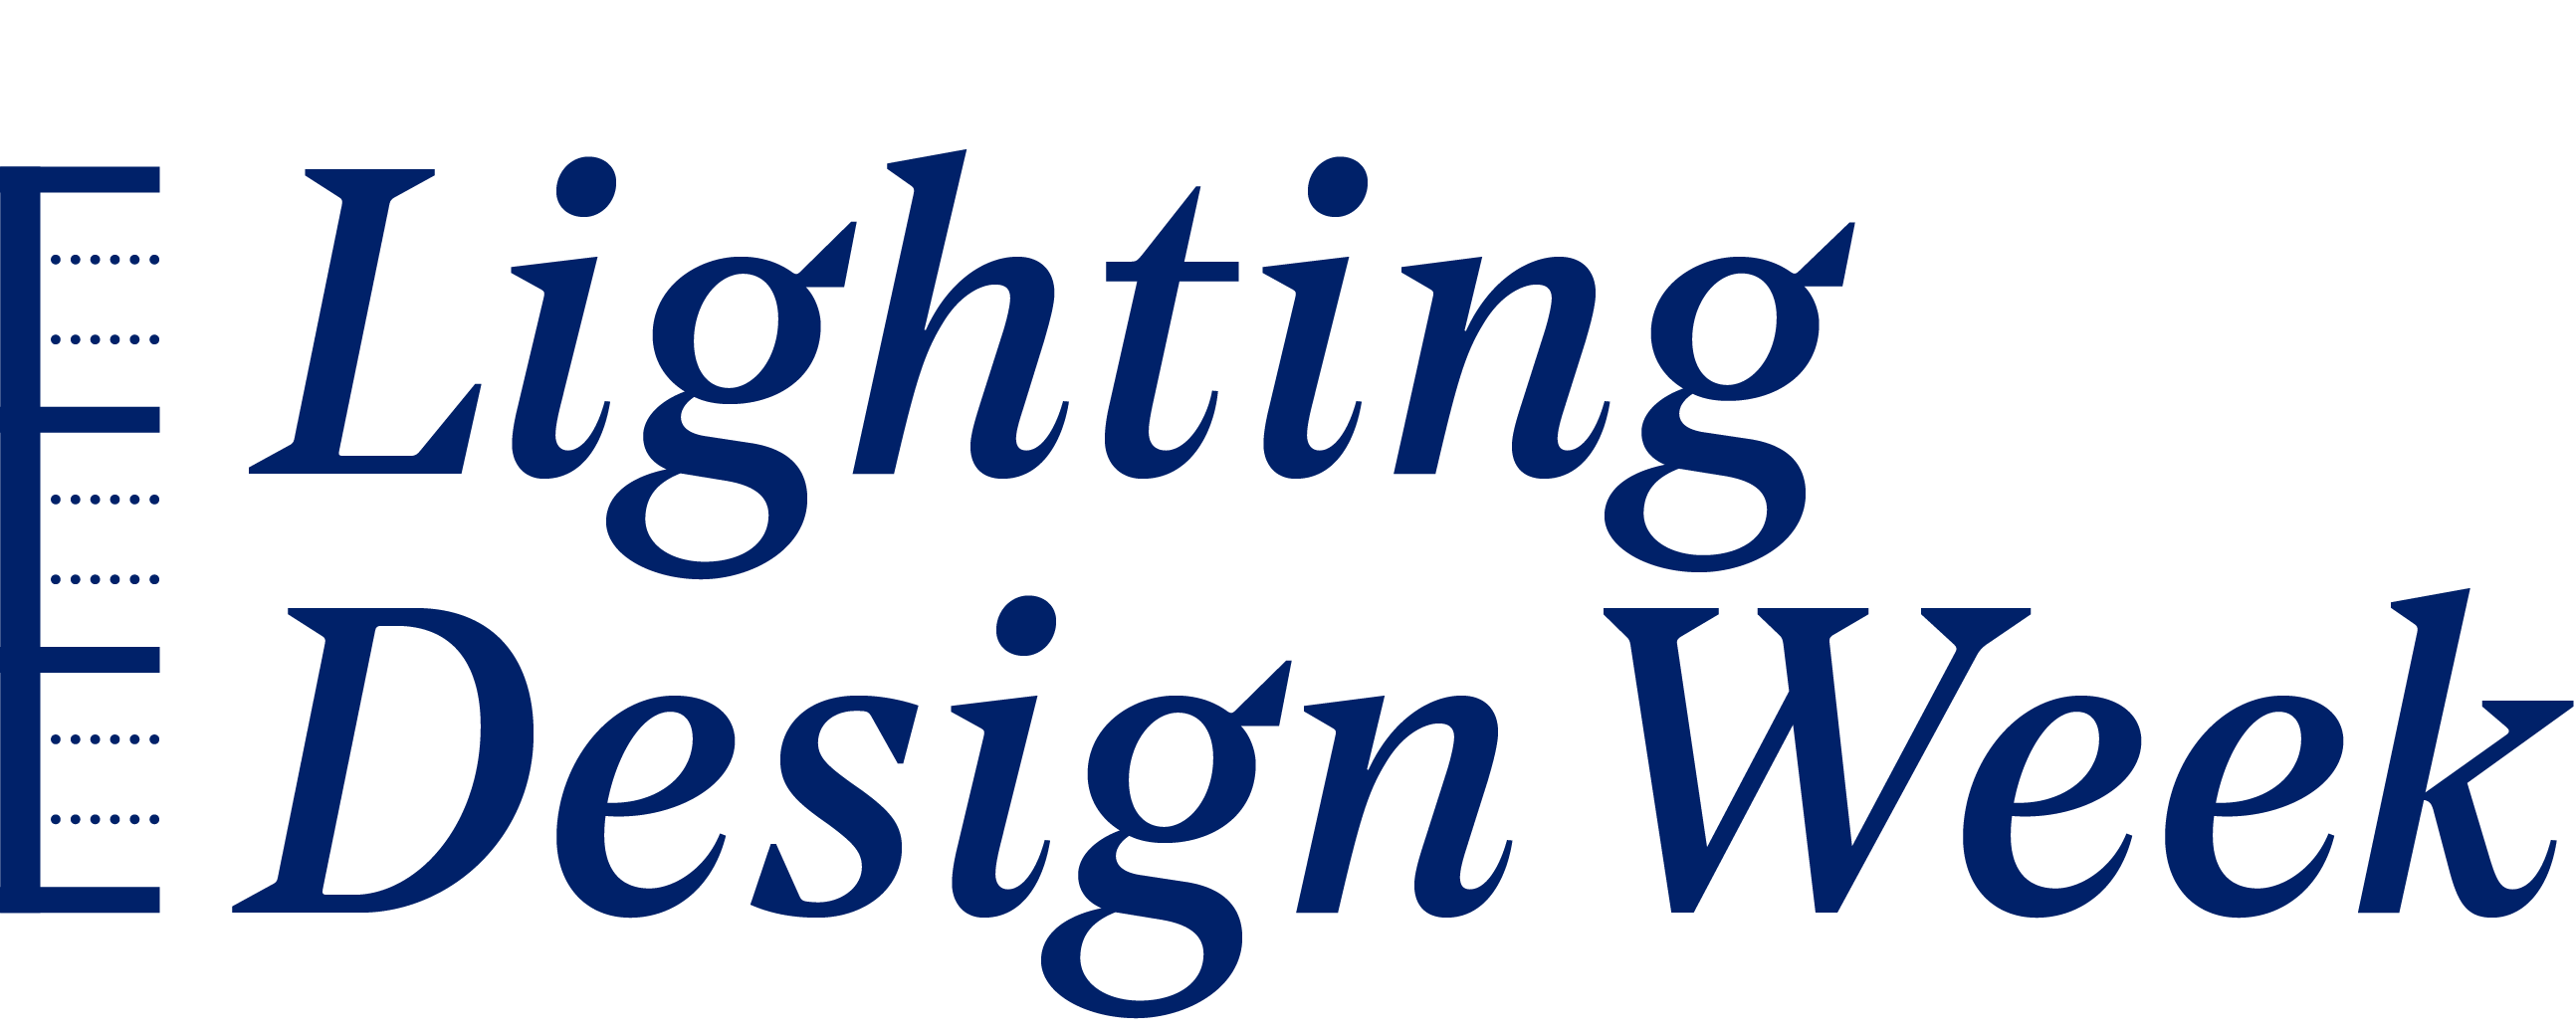 Lighting Design Week